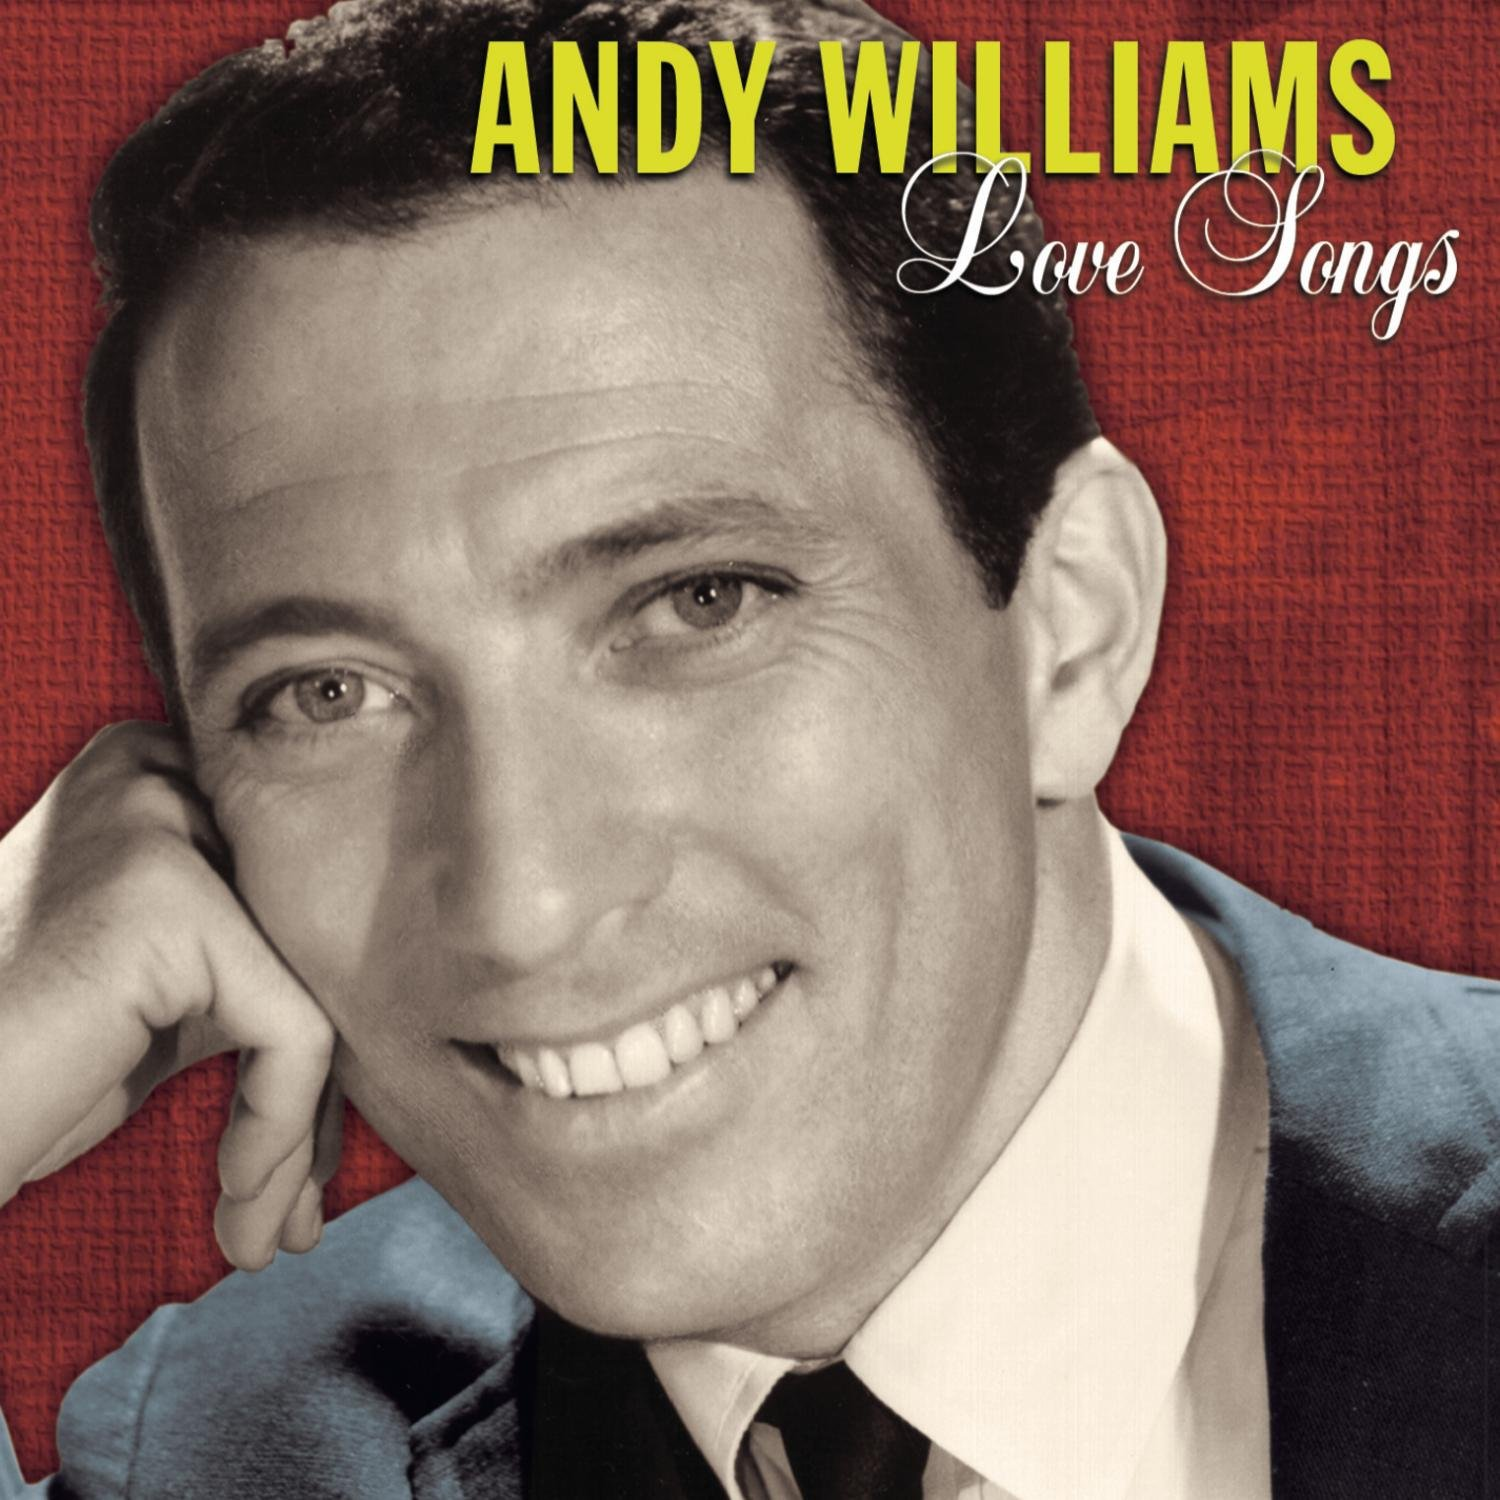 andy williams love story mp3 free download